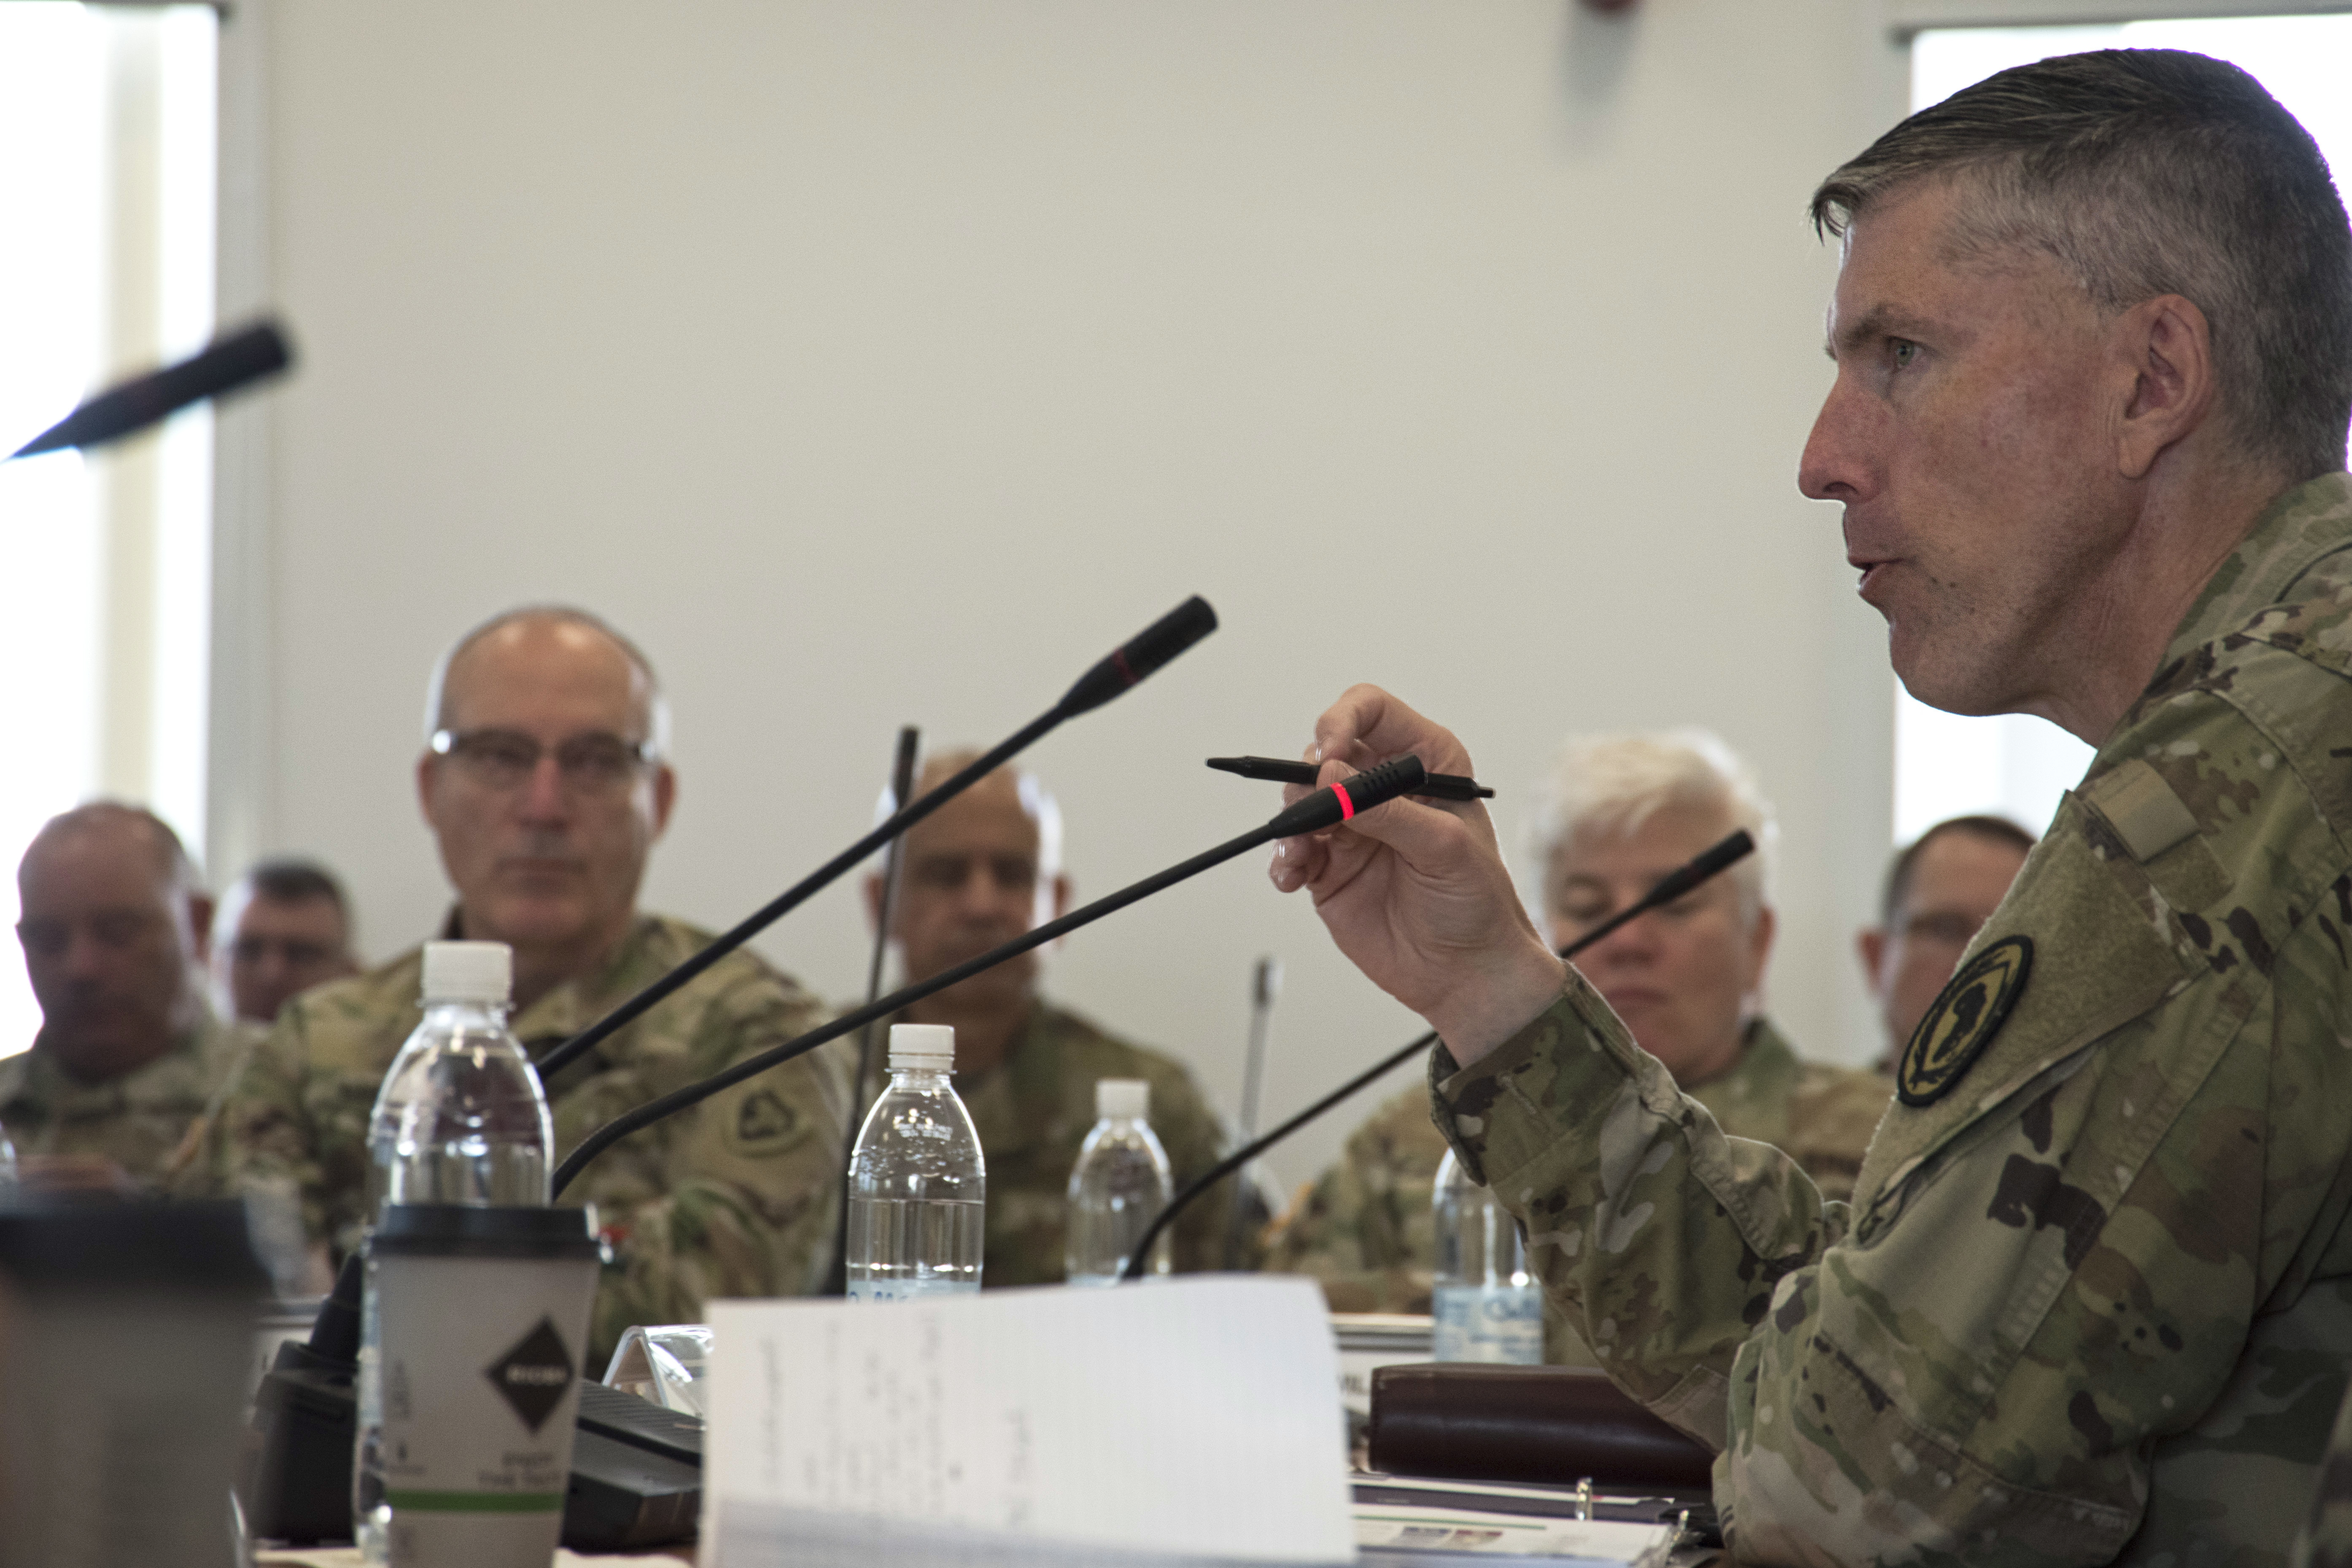 Air Force Maj. Gen. Christopher Craige, director for strategy, engagements and programs at AFRICOM, delivers his opening remarks during The 2019 Adjutant General State Partnership Program Conference April 15 in Stuttgart, Germany. The SPP links National Guard units with partnering nations to develop mutually beneficial long-term relations that enhance global security, understanding and cooperation.(U.S. Navy photo by Mass Communication Specialist 1st Class Christopher Hurd/Released)